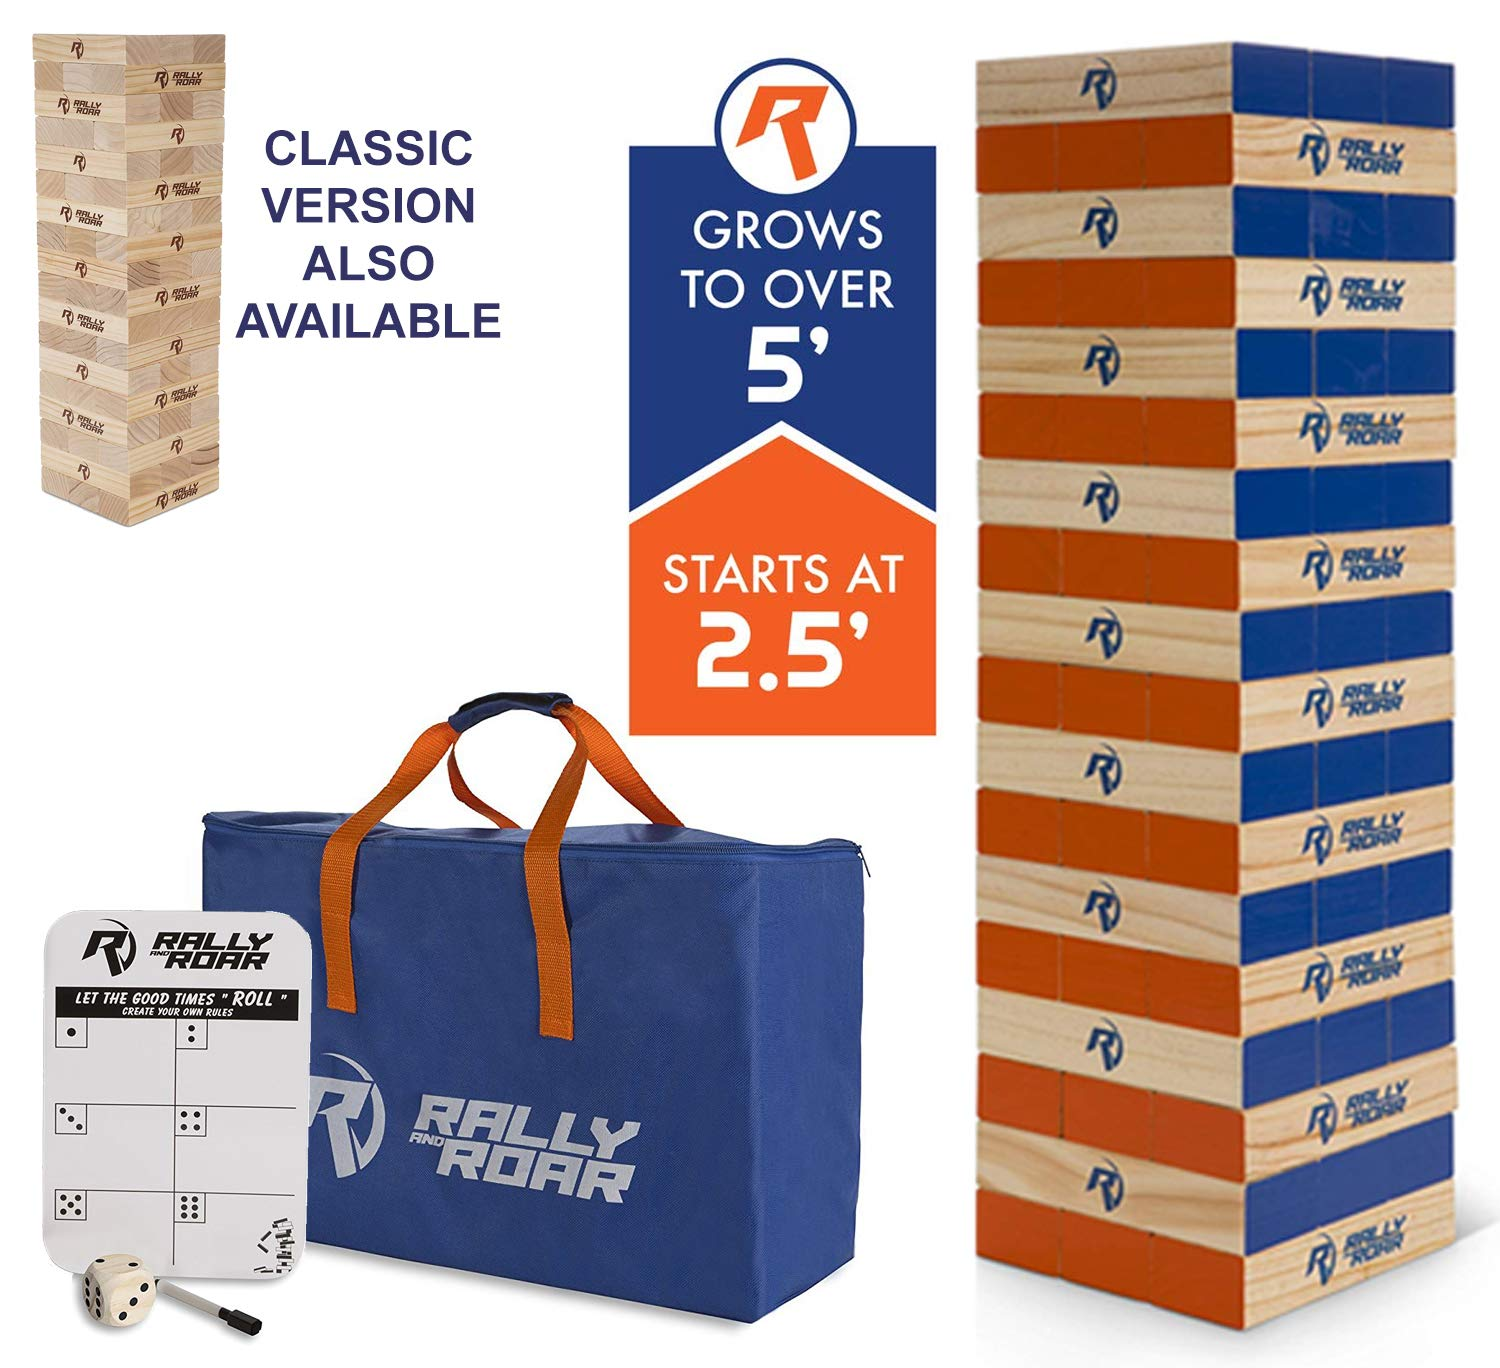 Rally and Roar Toppling Tower - Giant Tumbling Timbers Game - 2.5 feet Tall (Build to Over 5 feet) Premium Wood Version - For Adults, Family - Stacking Blocks Set w/Canvas Bag